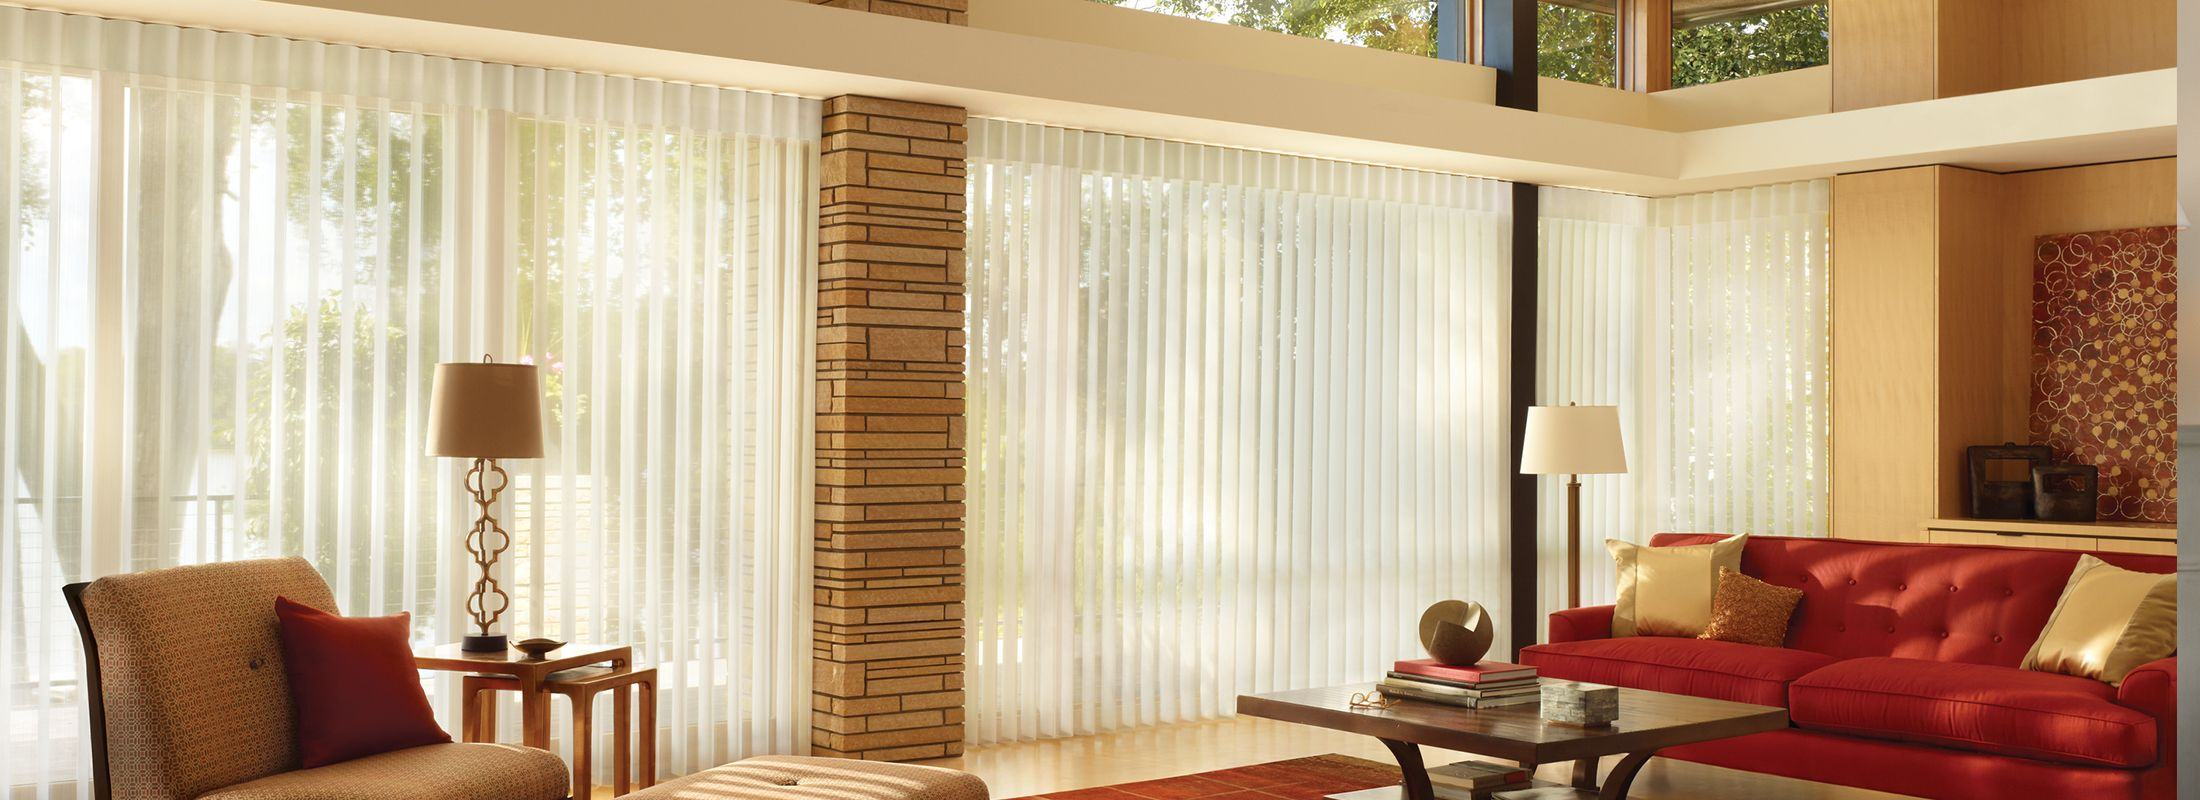 Privacy blinds in Stria Harmony - Luminette